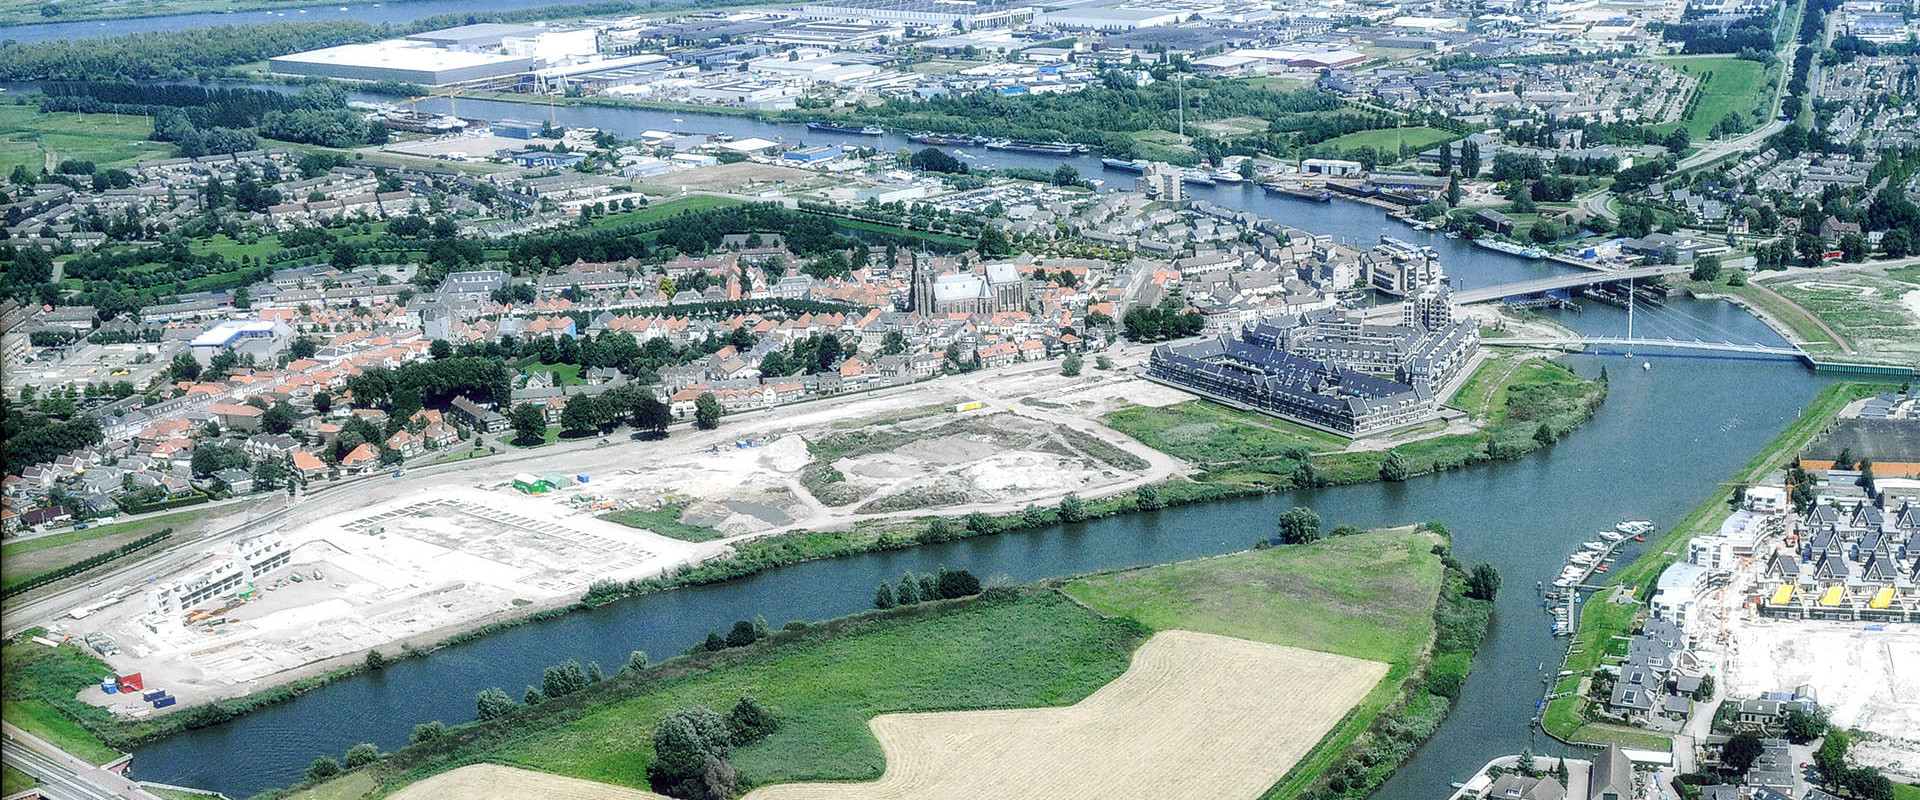 luchtfoto copy